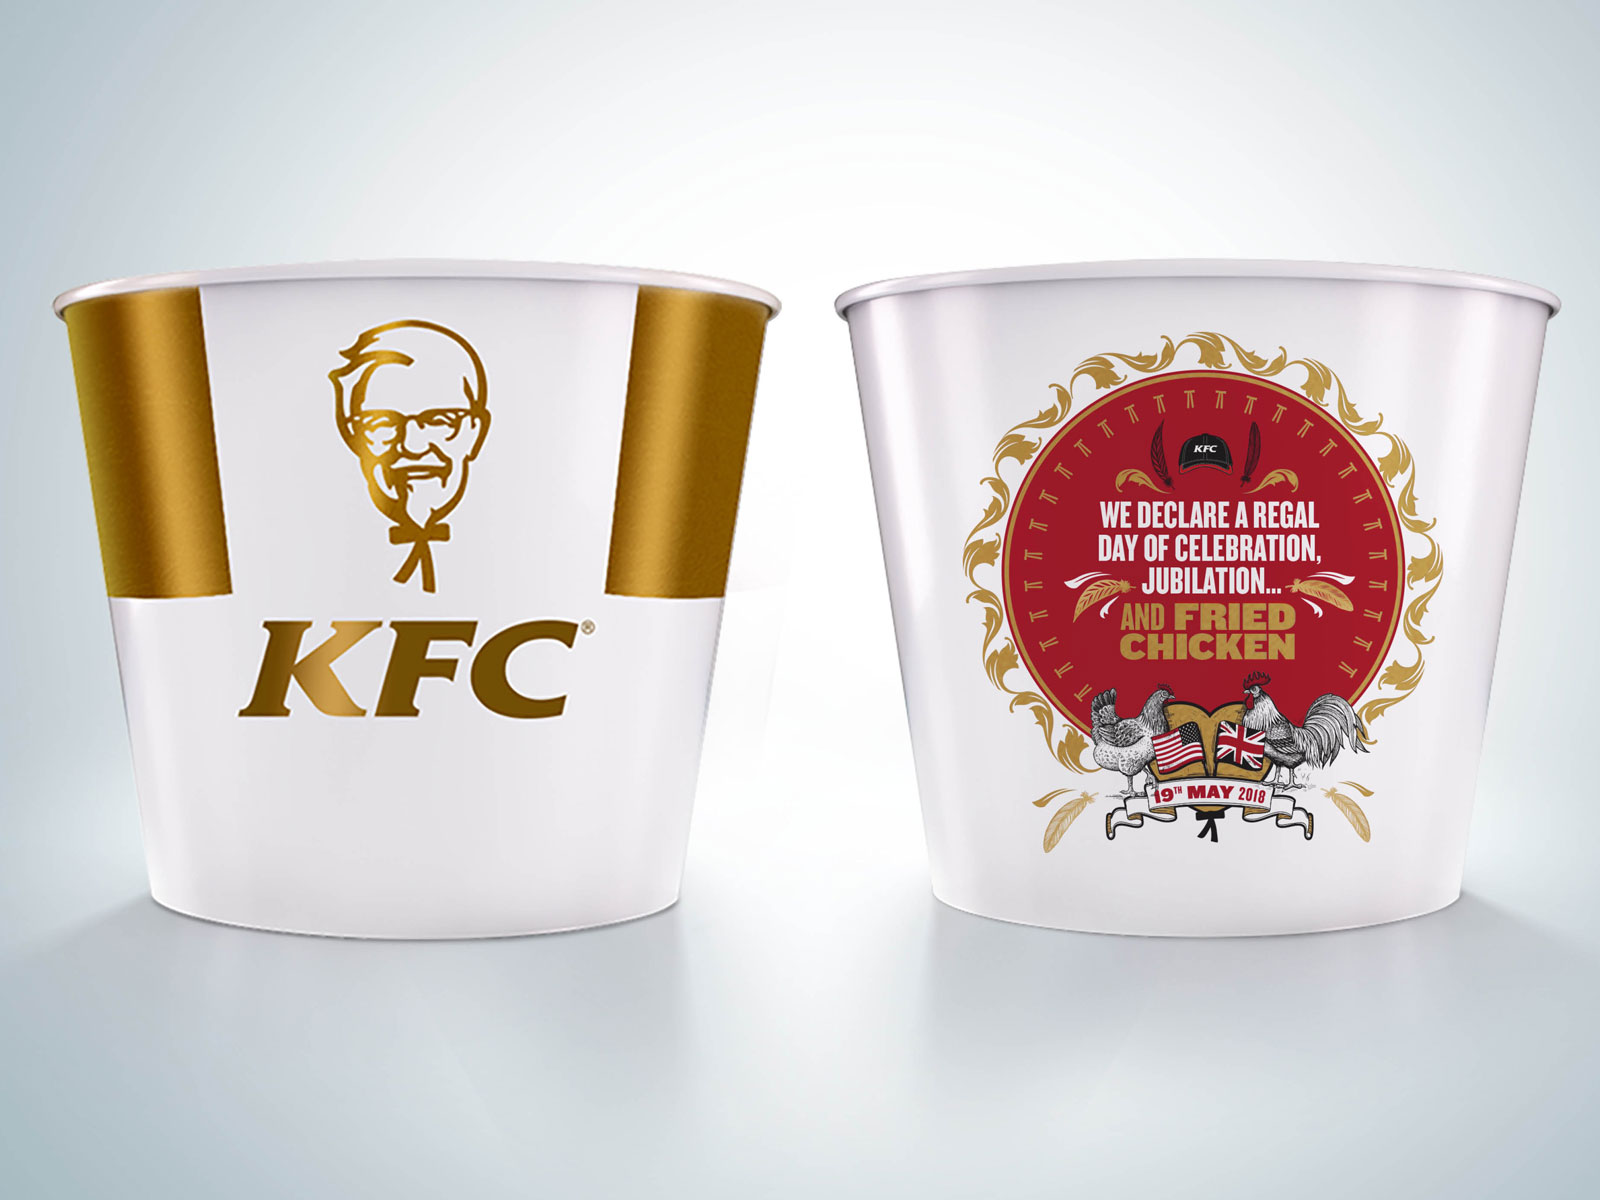 KFC Royal Wedding Bucket